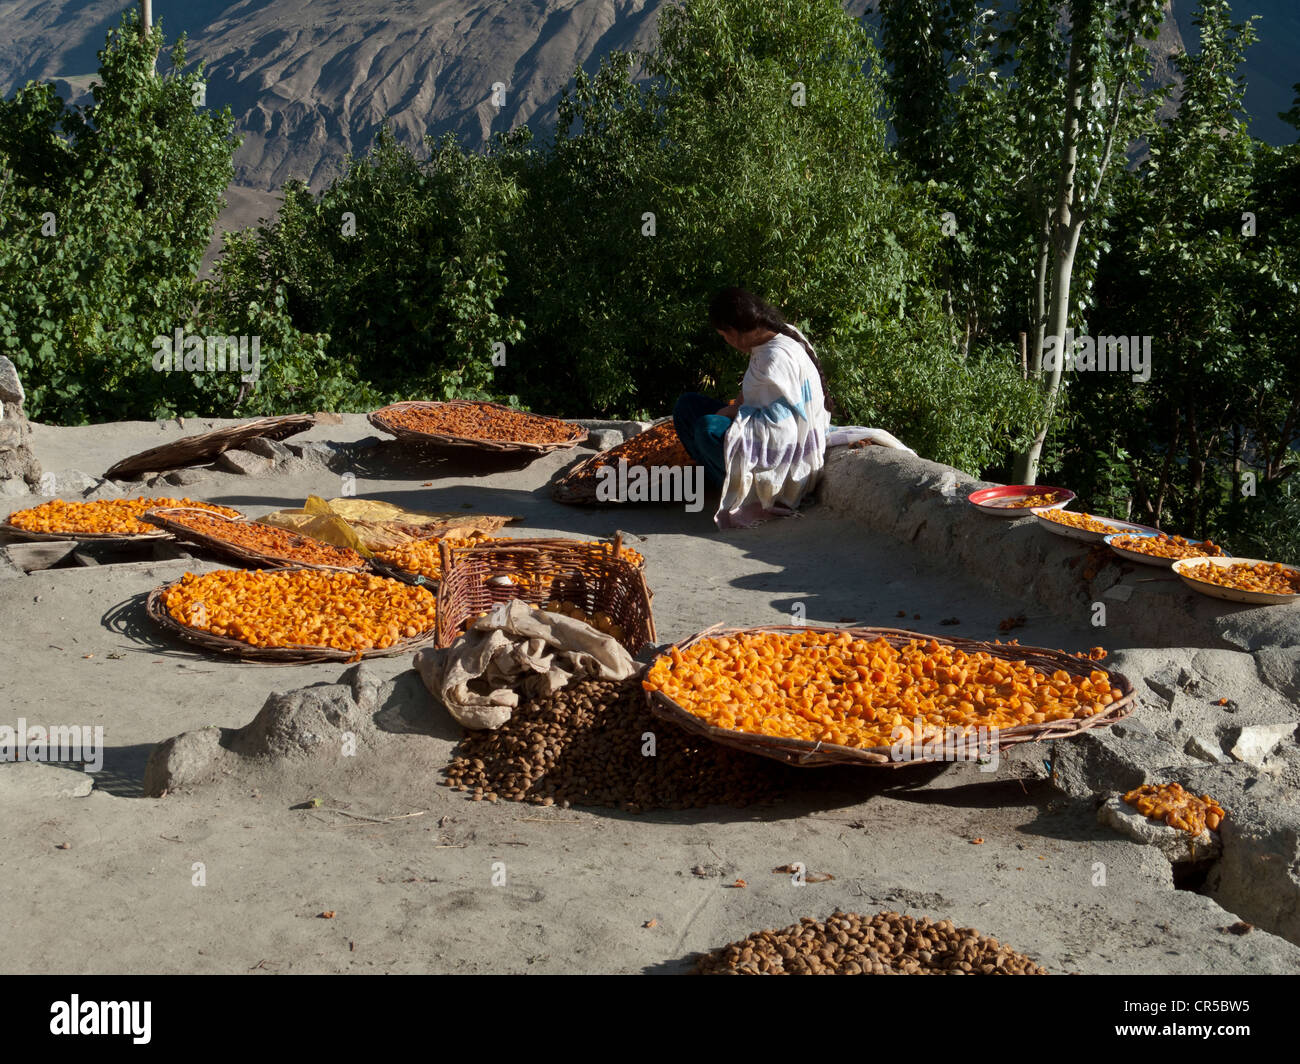 Dried apricots, in the area of Karimabad, North West Frontier, Pakistan, South Asia - Stock Image